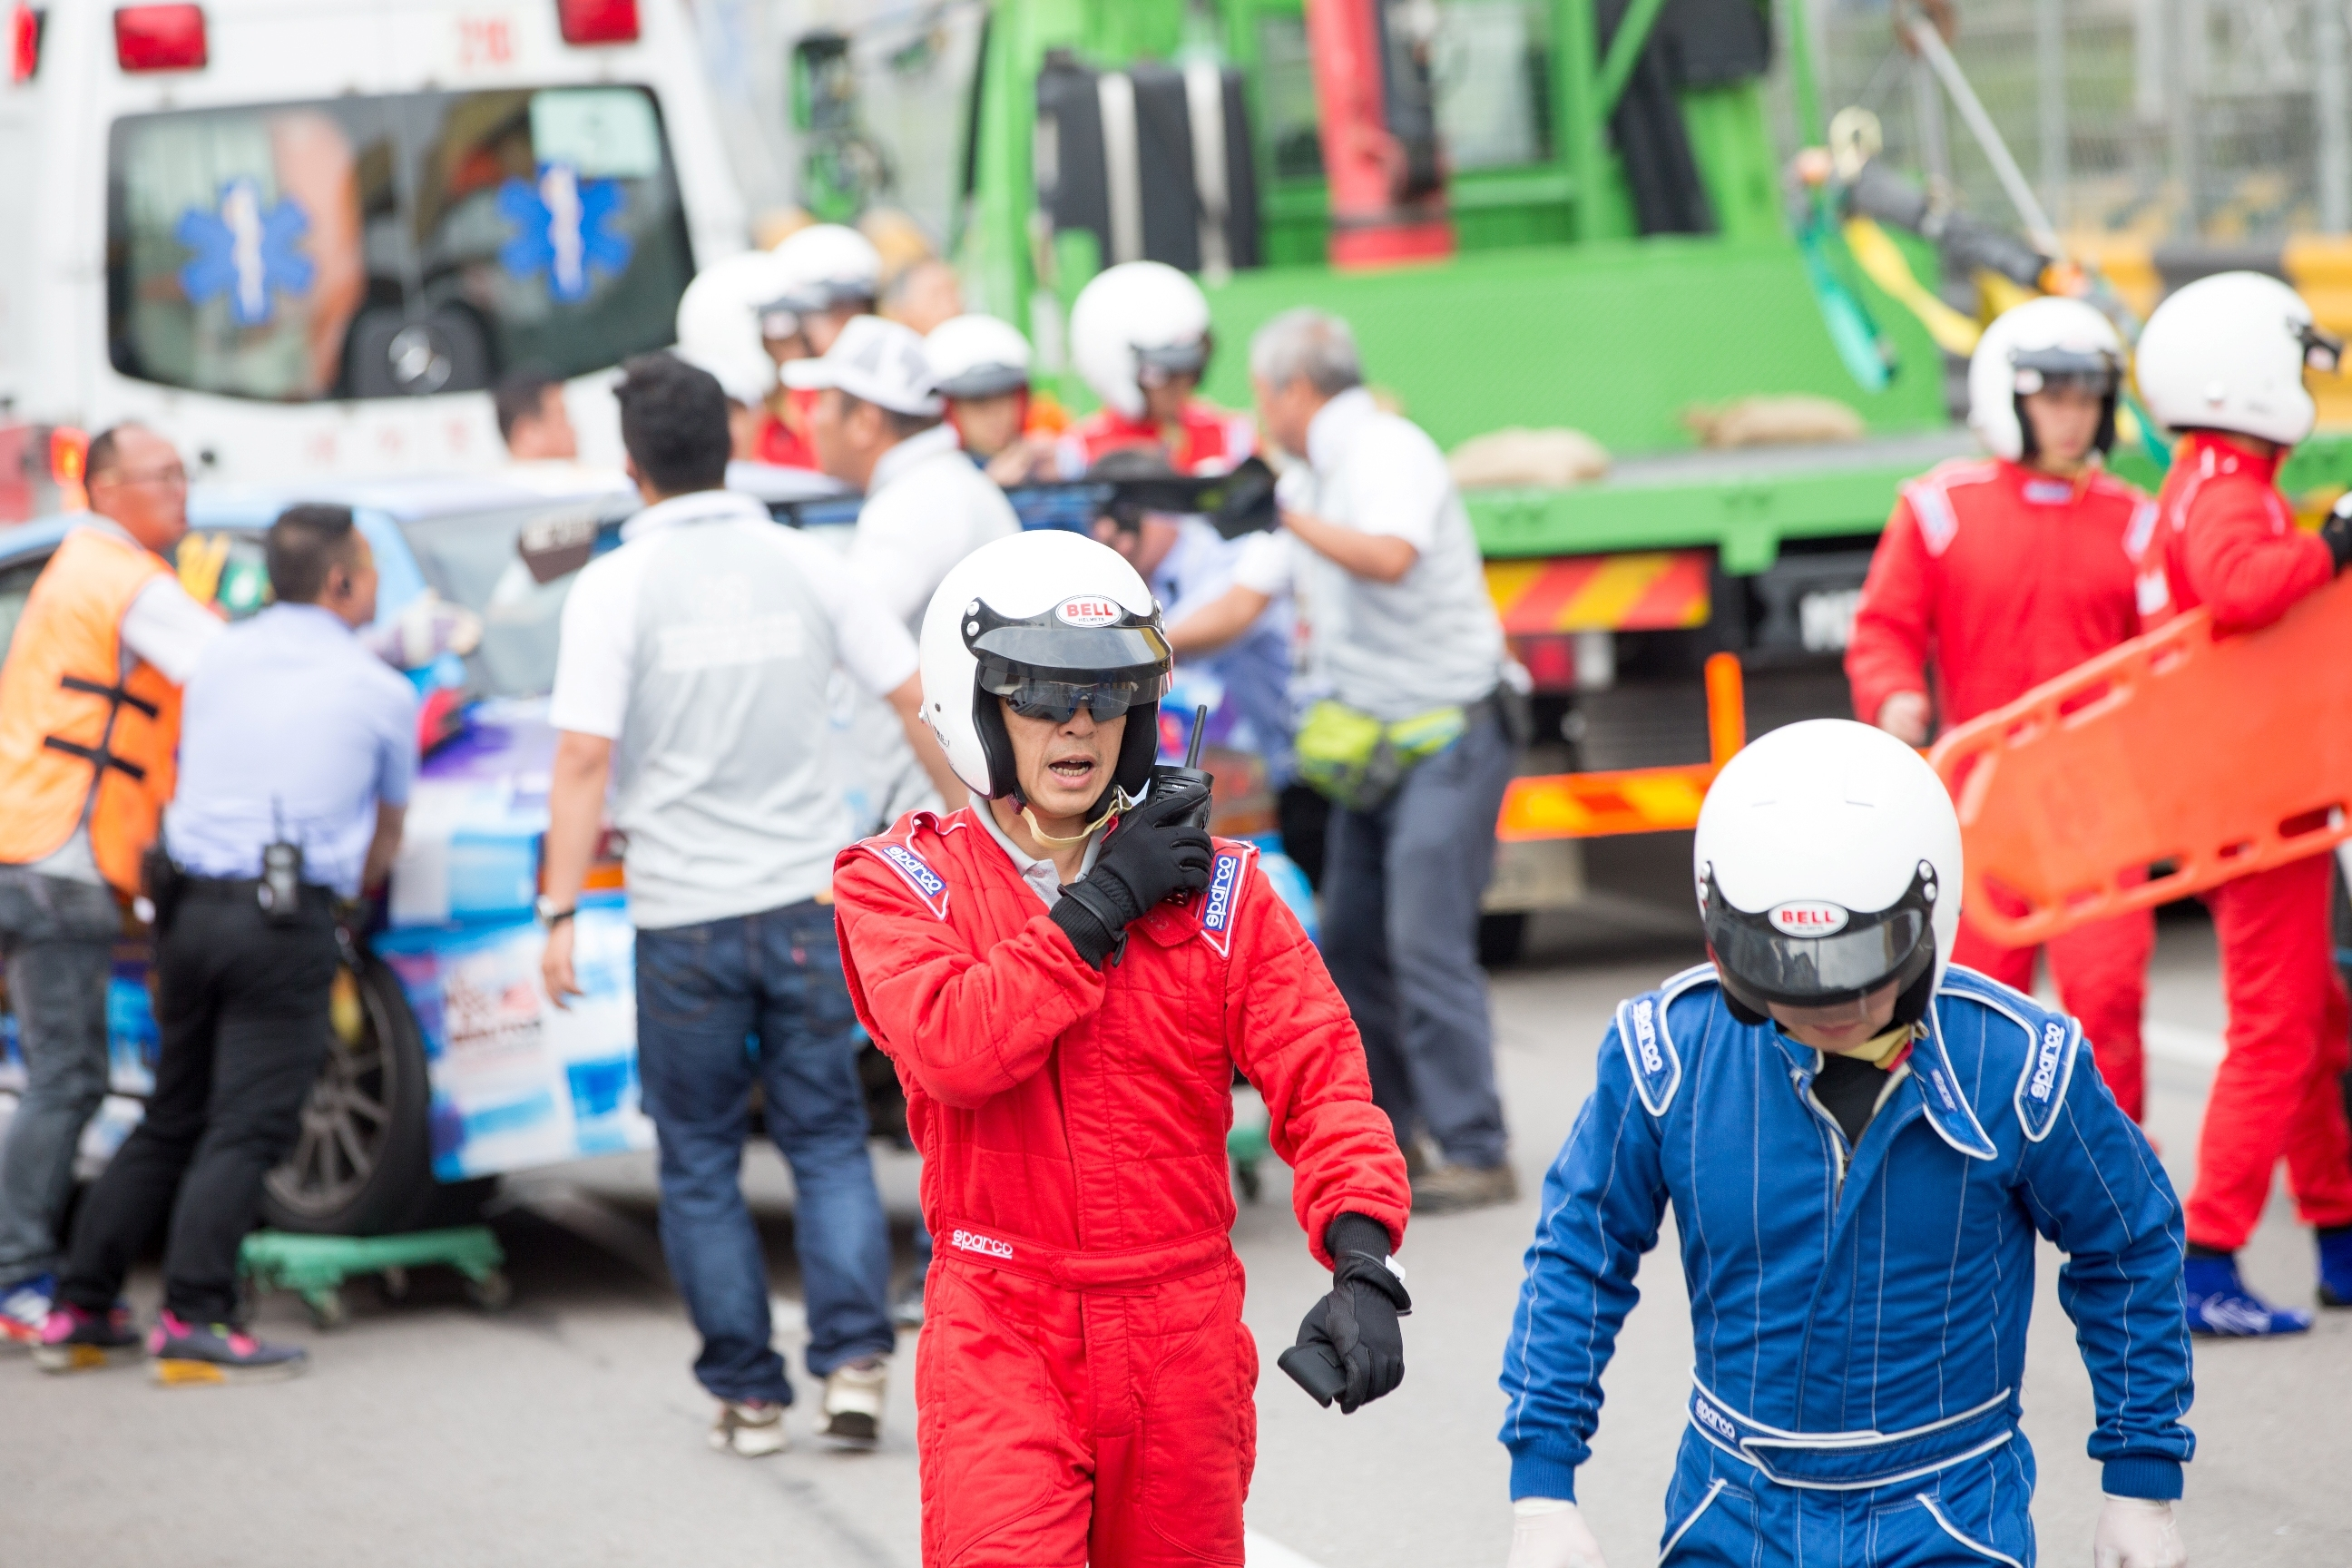 Hytera chosen as the official radio supplier in securing overall event operation for 62nd Macau Grand Prix (Photo: Business Wire)